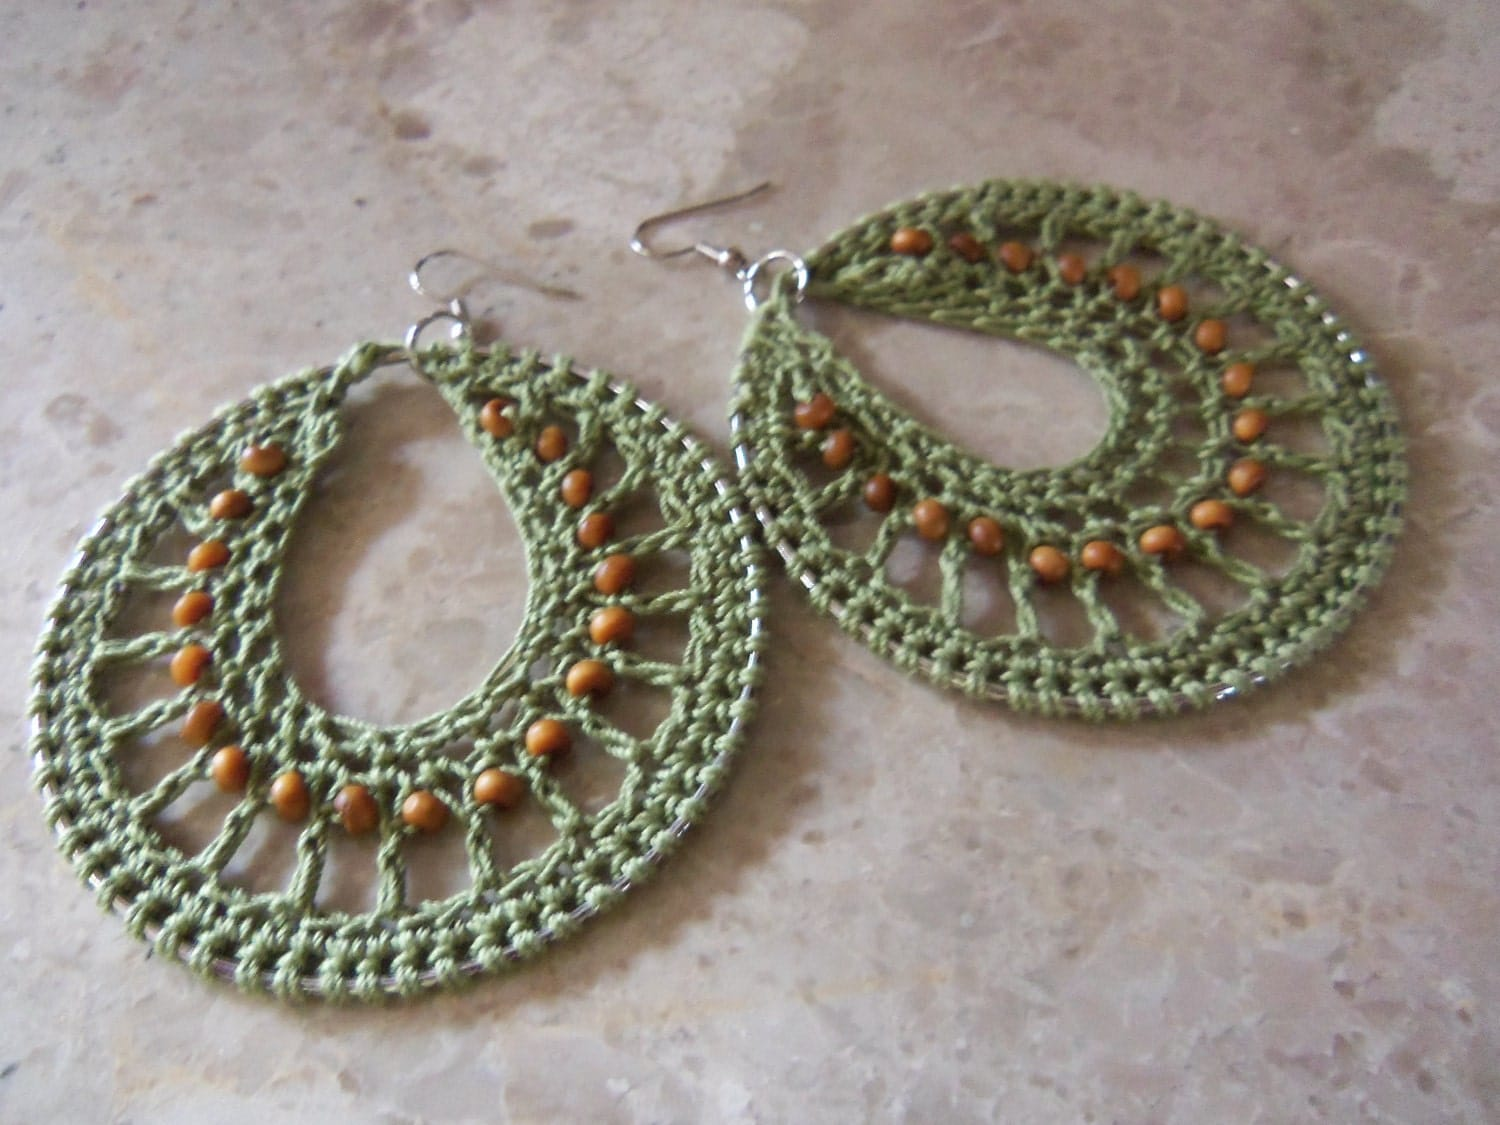 Crochet Earrings : Crochet Hoop Earrings Olive by NaturallyWonderful on Etsy